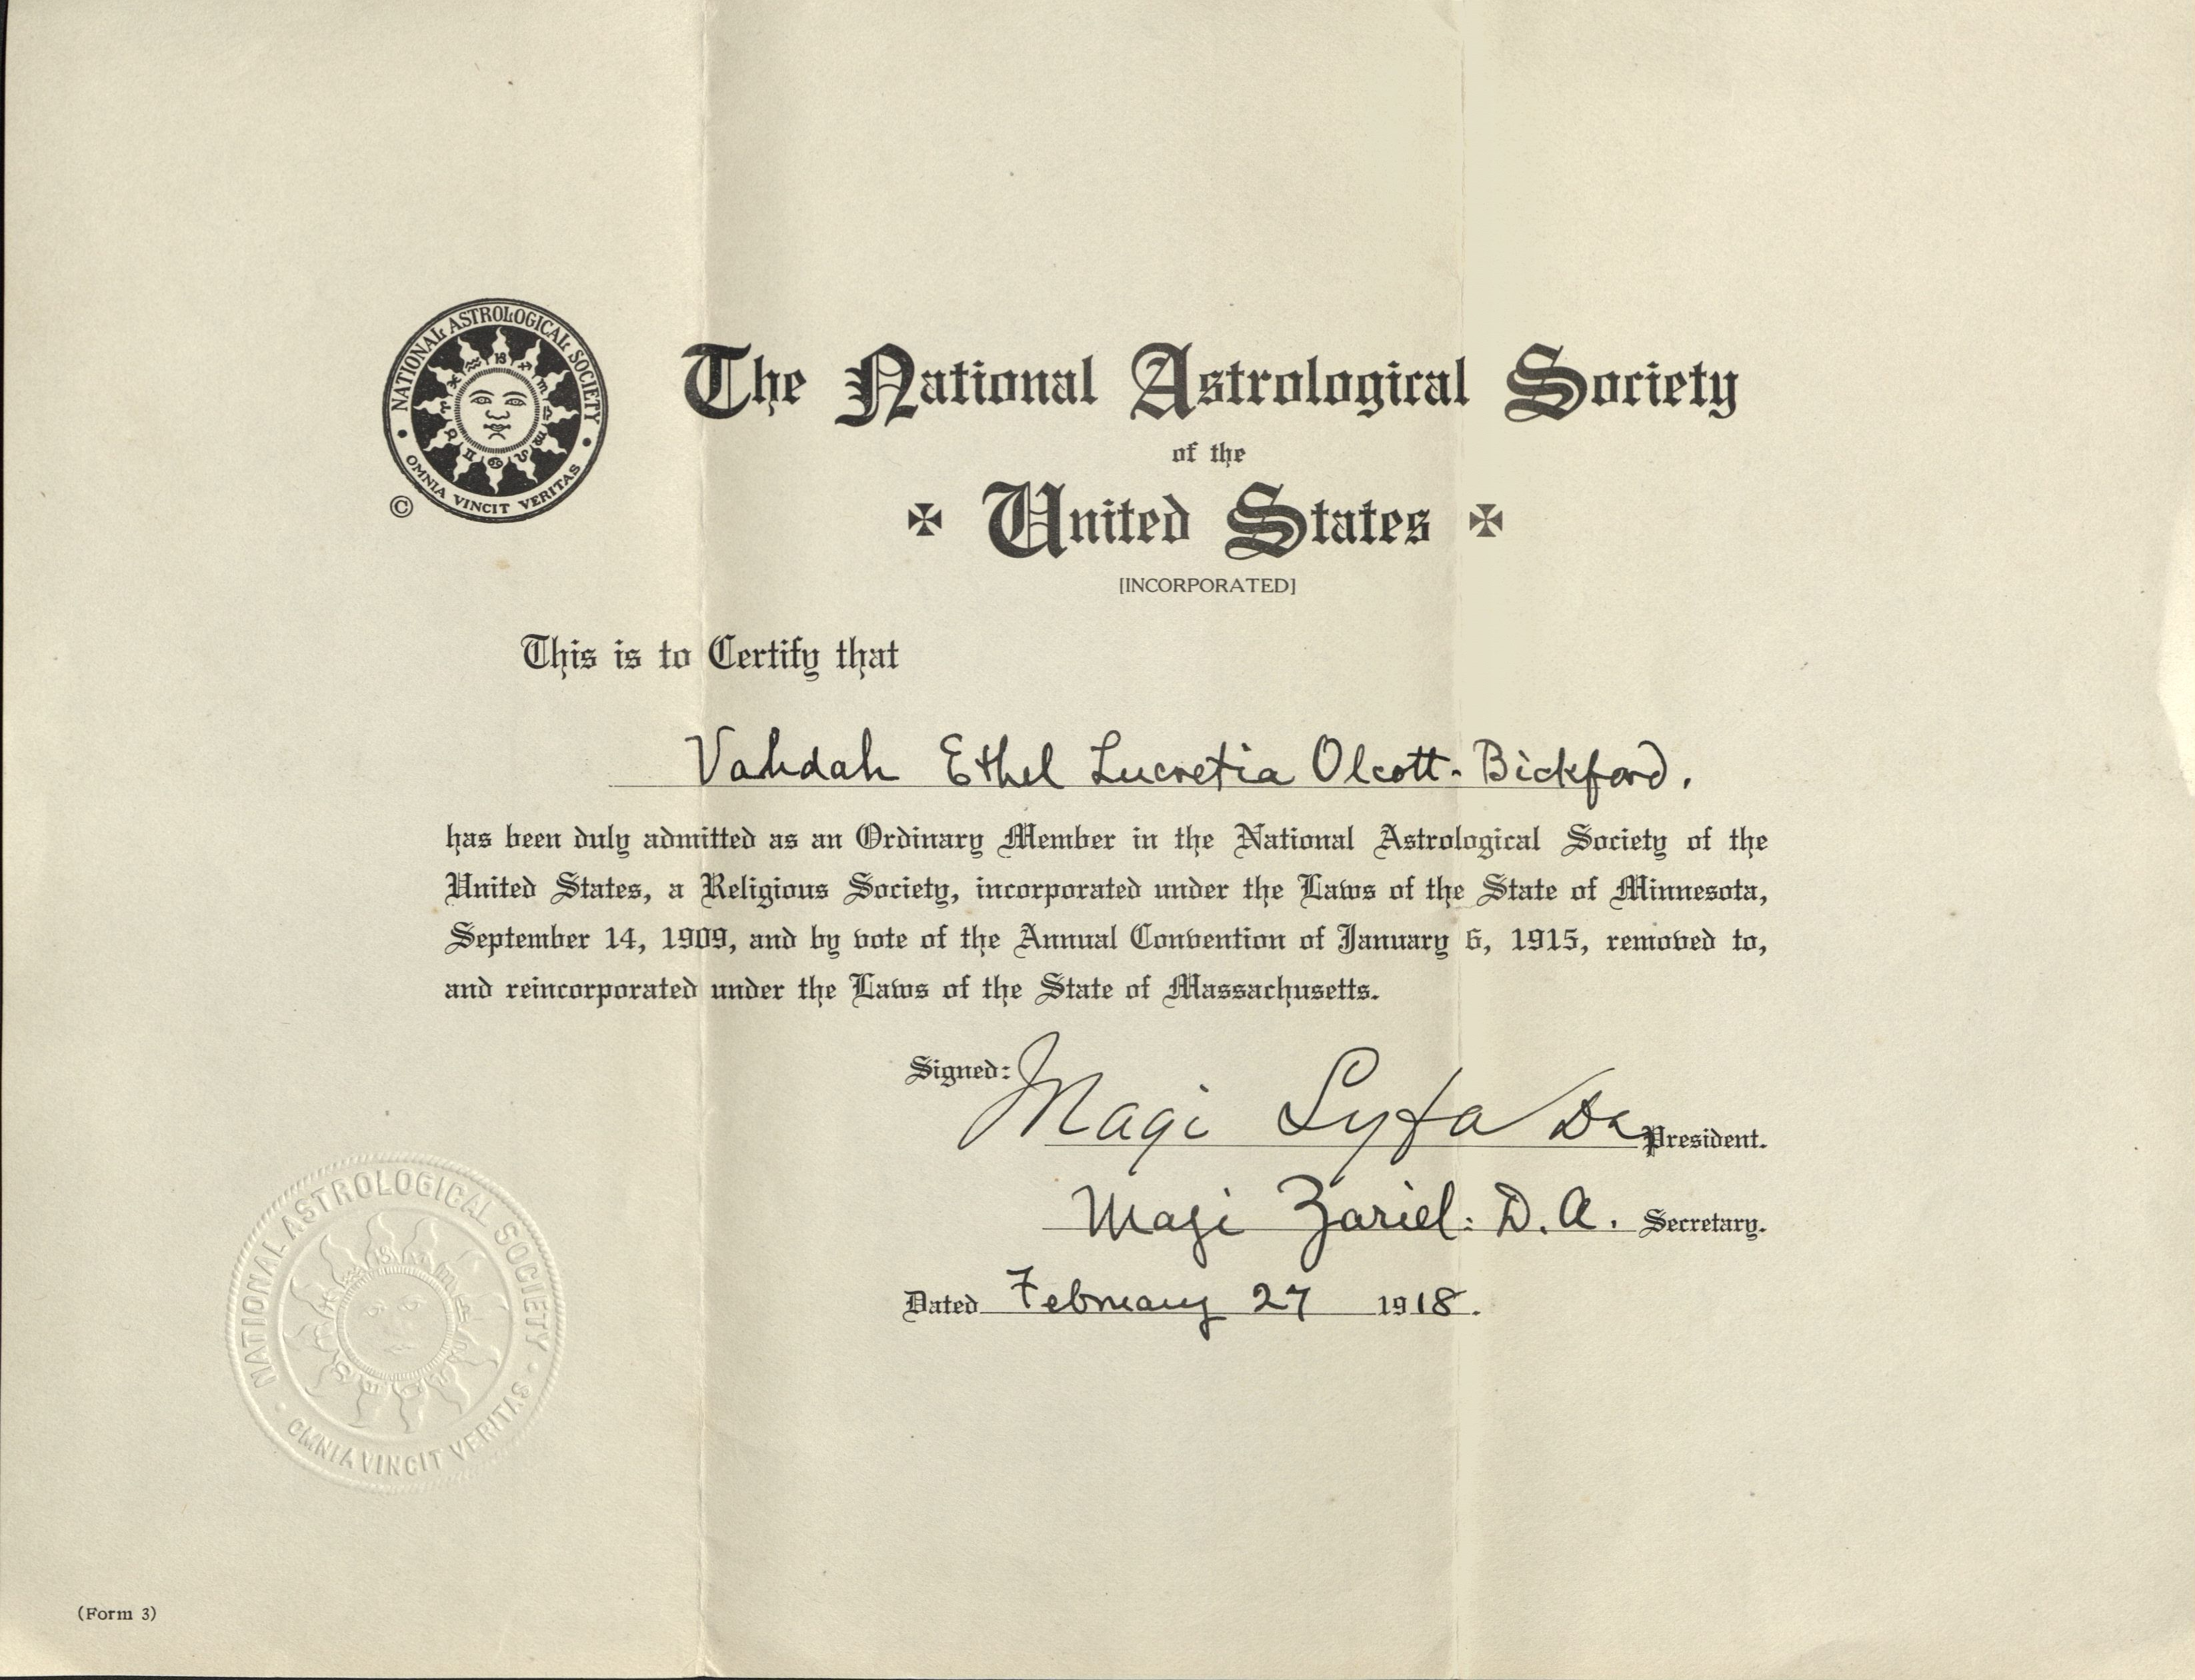 Inspirational photograph of norwalk birth certificate business los angeles archivists collectiveastrological archives los angeles archivists collectiveastrological archives from norwalk birth certificate aiddatafo Image collections